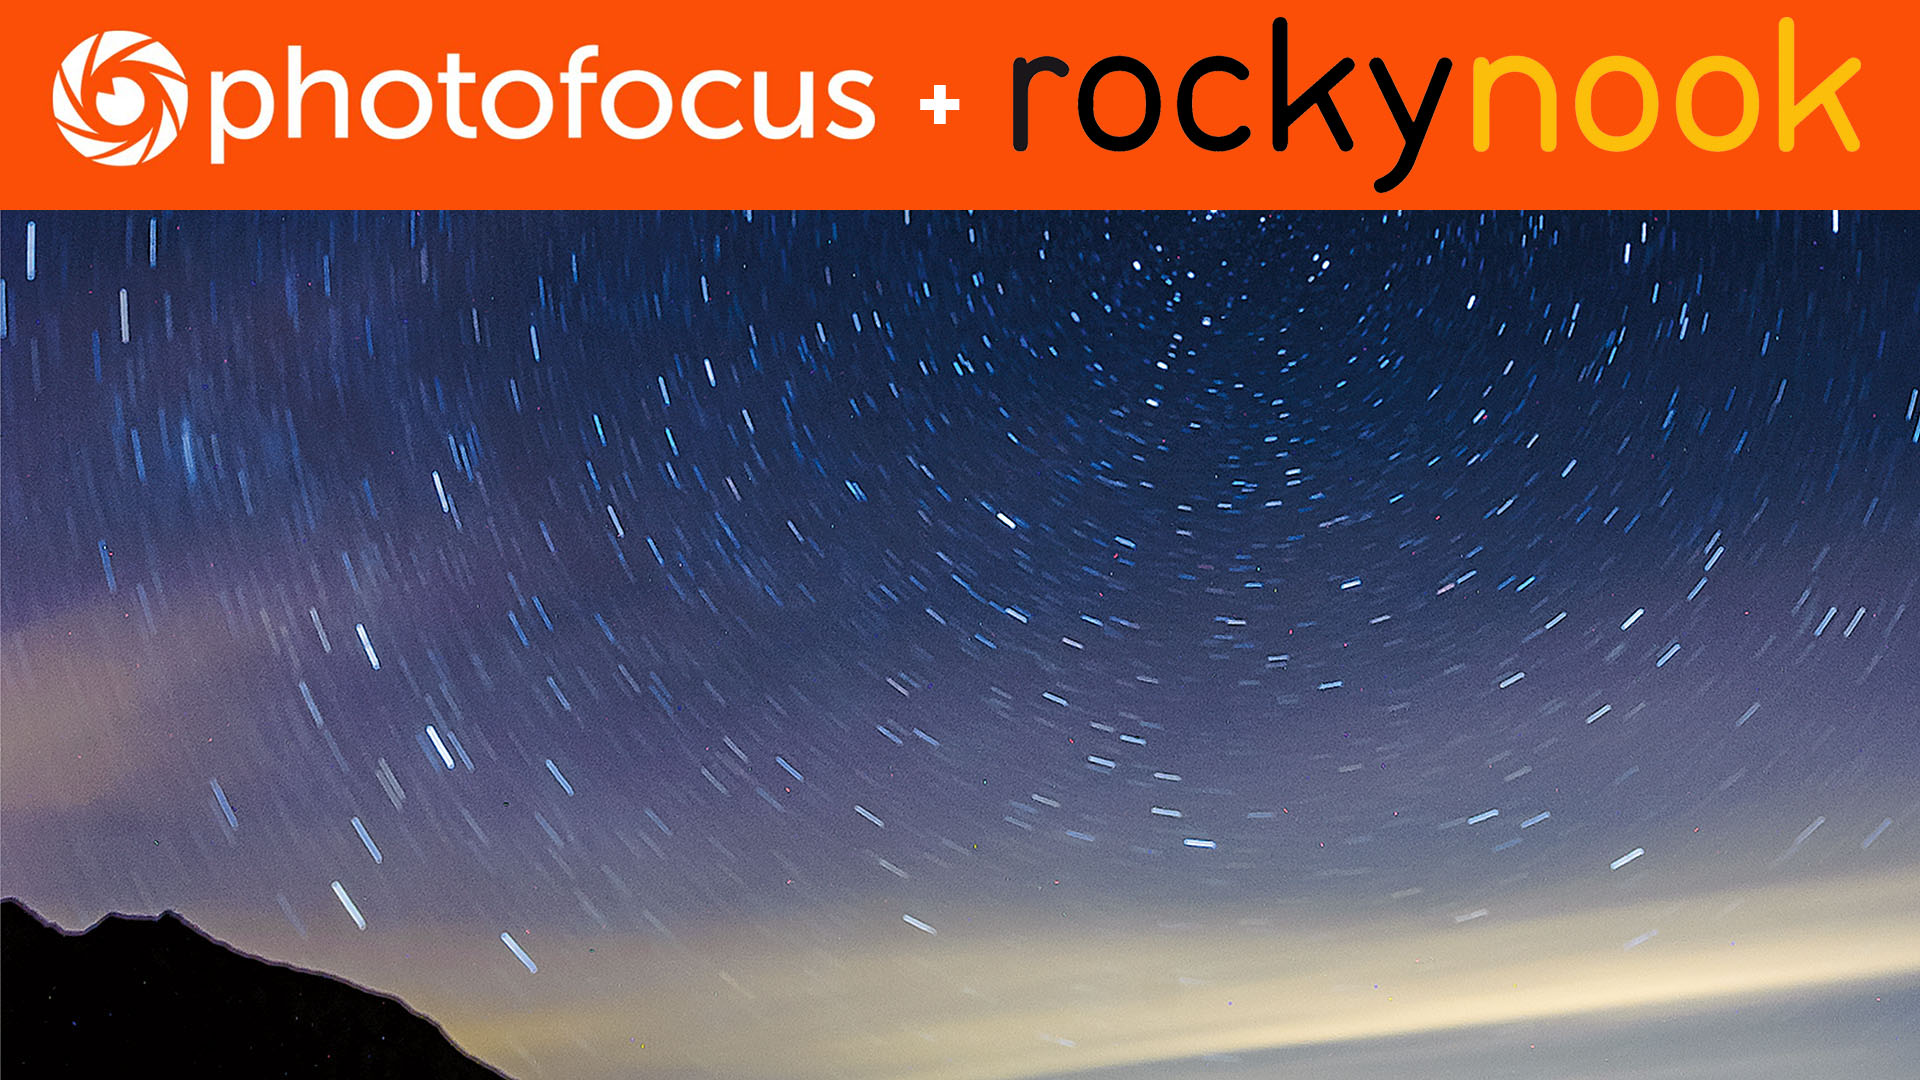 Astrophotography and stacks